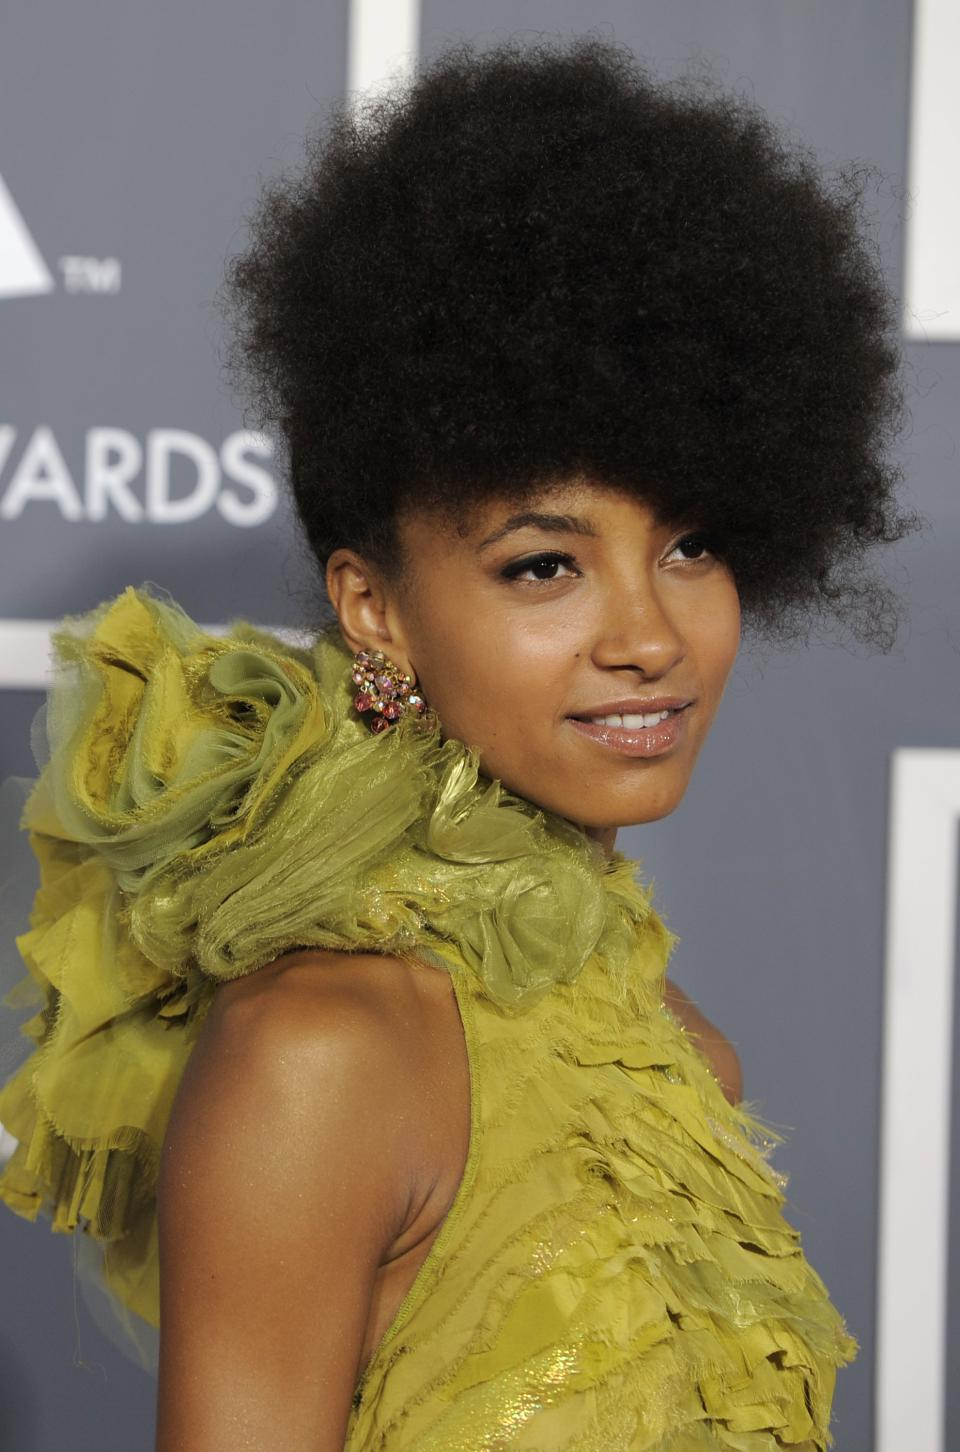 Esperanza Spalding arrives at the 53rd annual Grammy Awards on Sunday, Feb. 13, 2011, in Los Angeles. (AP Photo/Chris Pizzello)